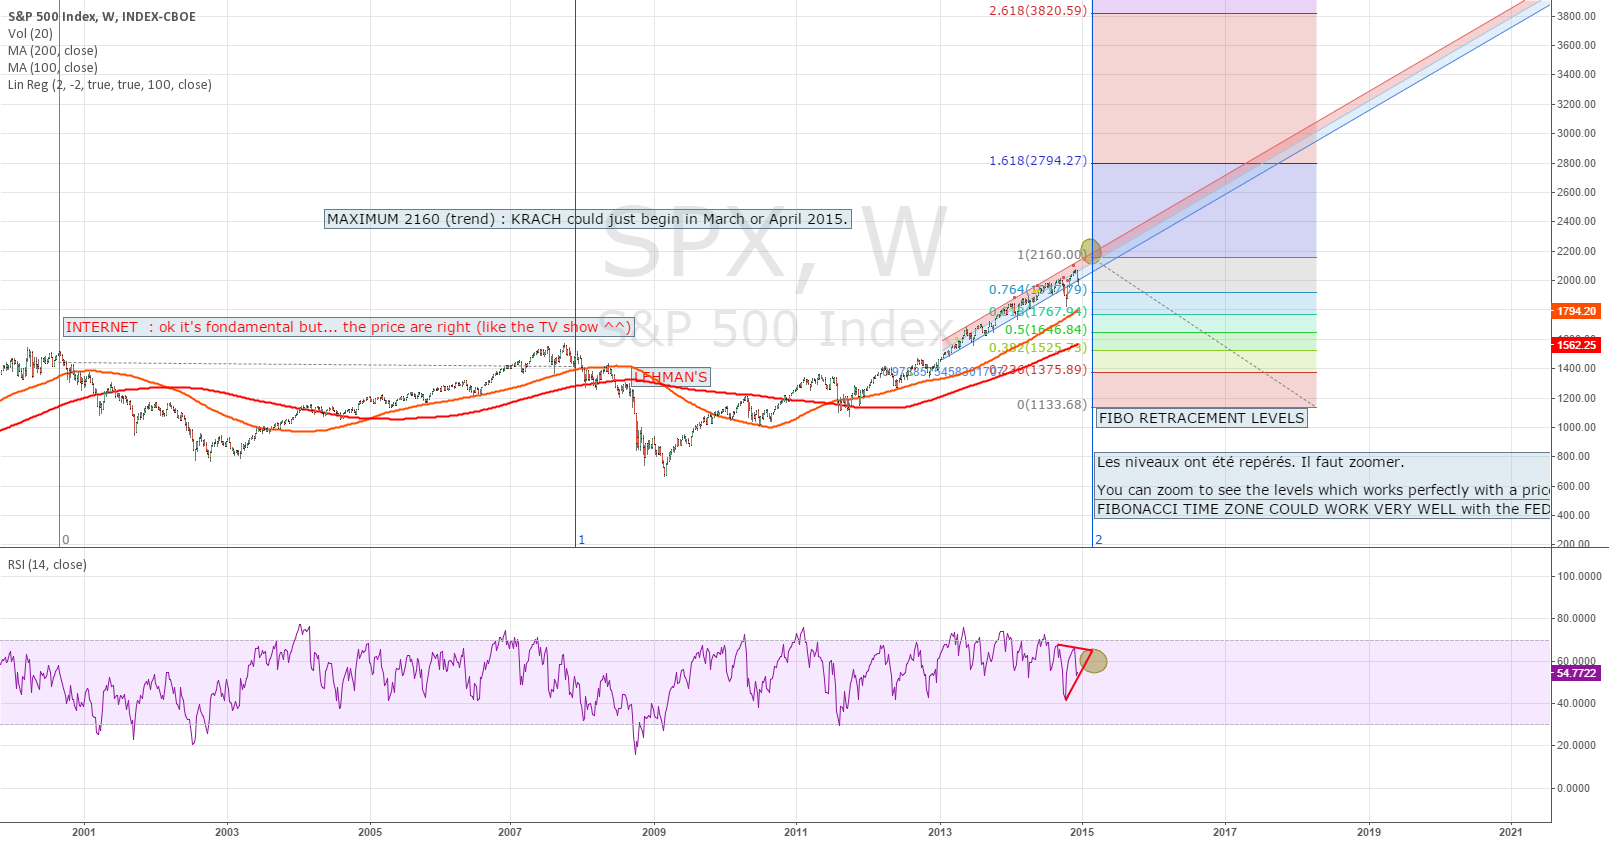 2015 : PREPARE FOR A KRACH ON SP500.... Objective : 1525 or more